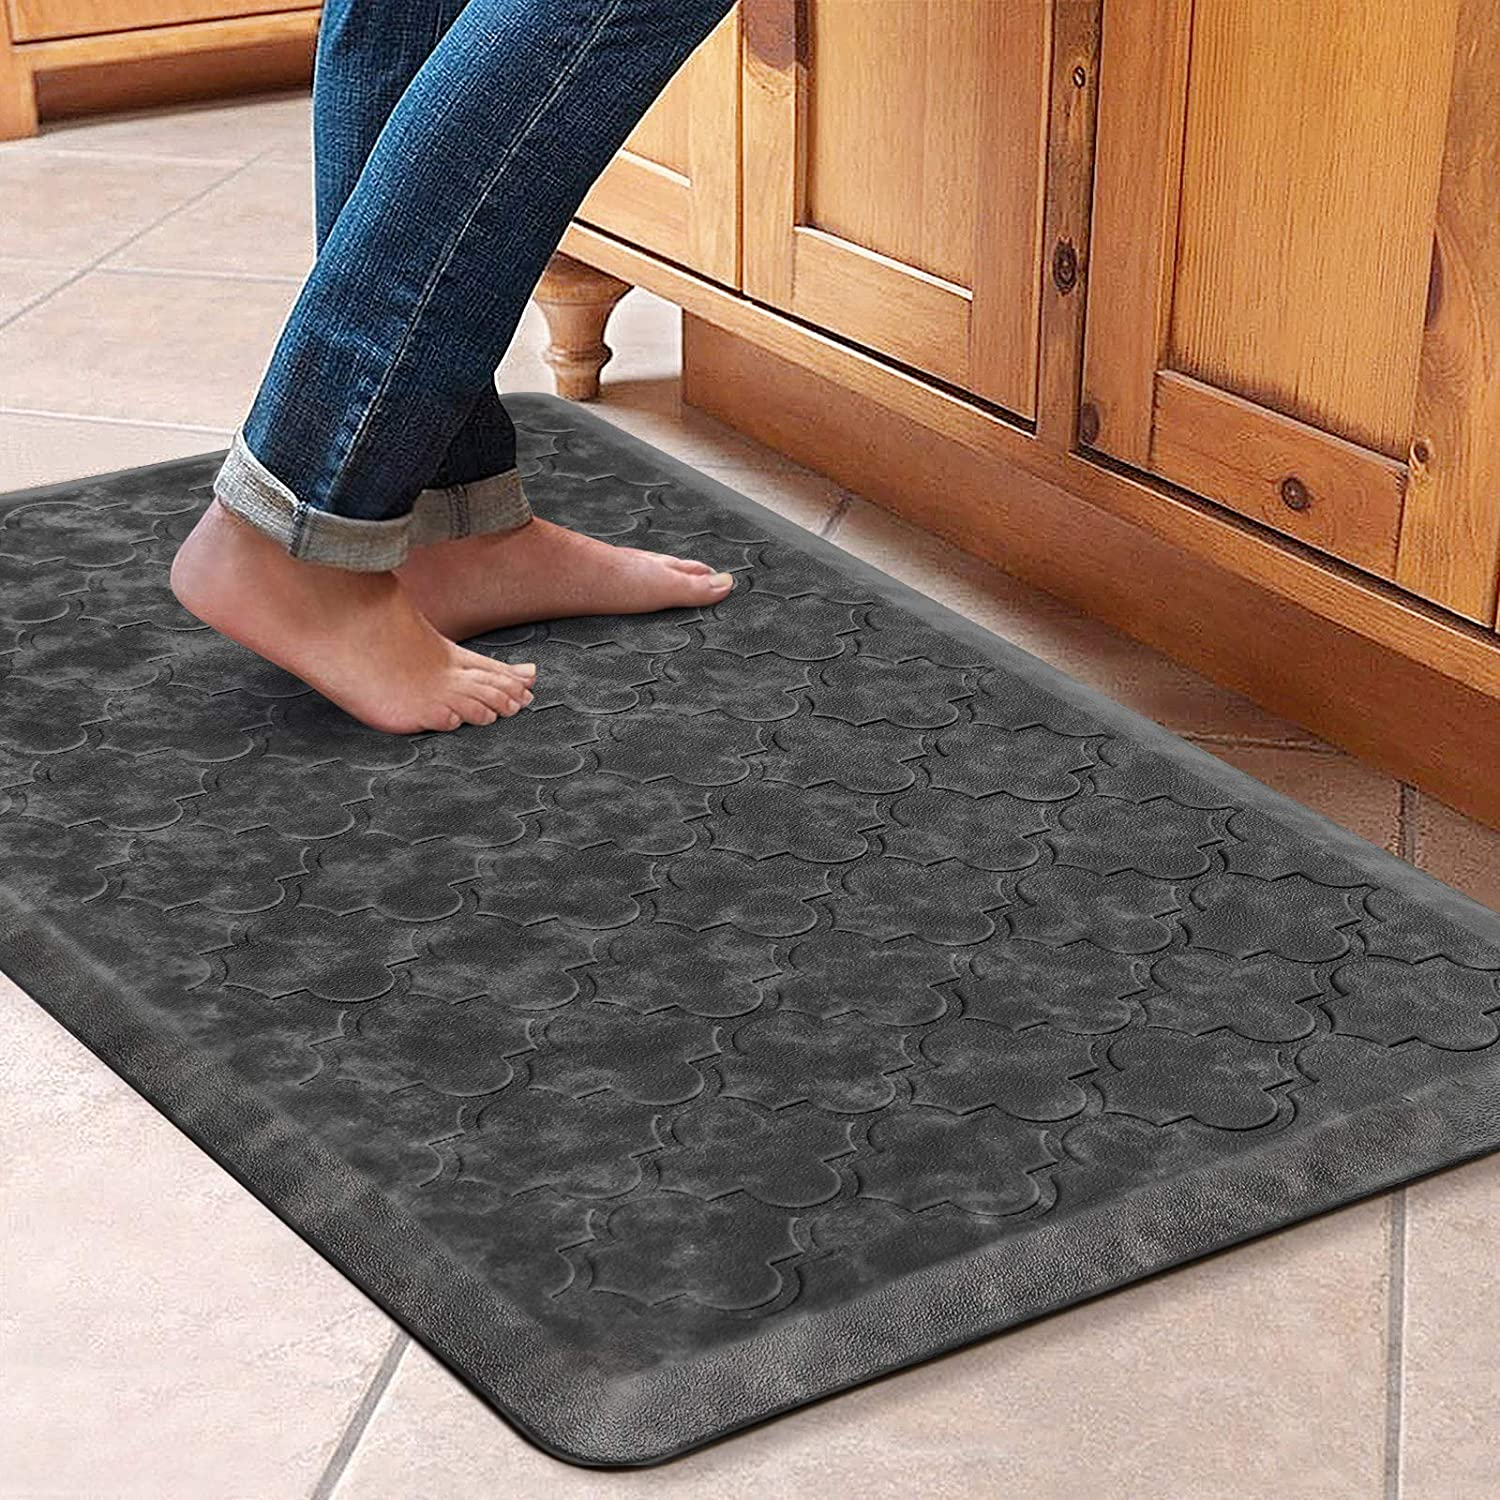 "WiseLife Kitchen Mat Cushioned Anti Fatigue Floor Mat,17.3""x28"",Thick Non Slip Waterproof Kitchen Rugs and Mats,Heavy Duty PVC Foam Standing Mat for Kitchen,Floor,Home,Office,Desk,Sink,Laundry,Grey"